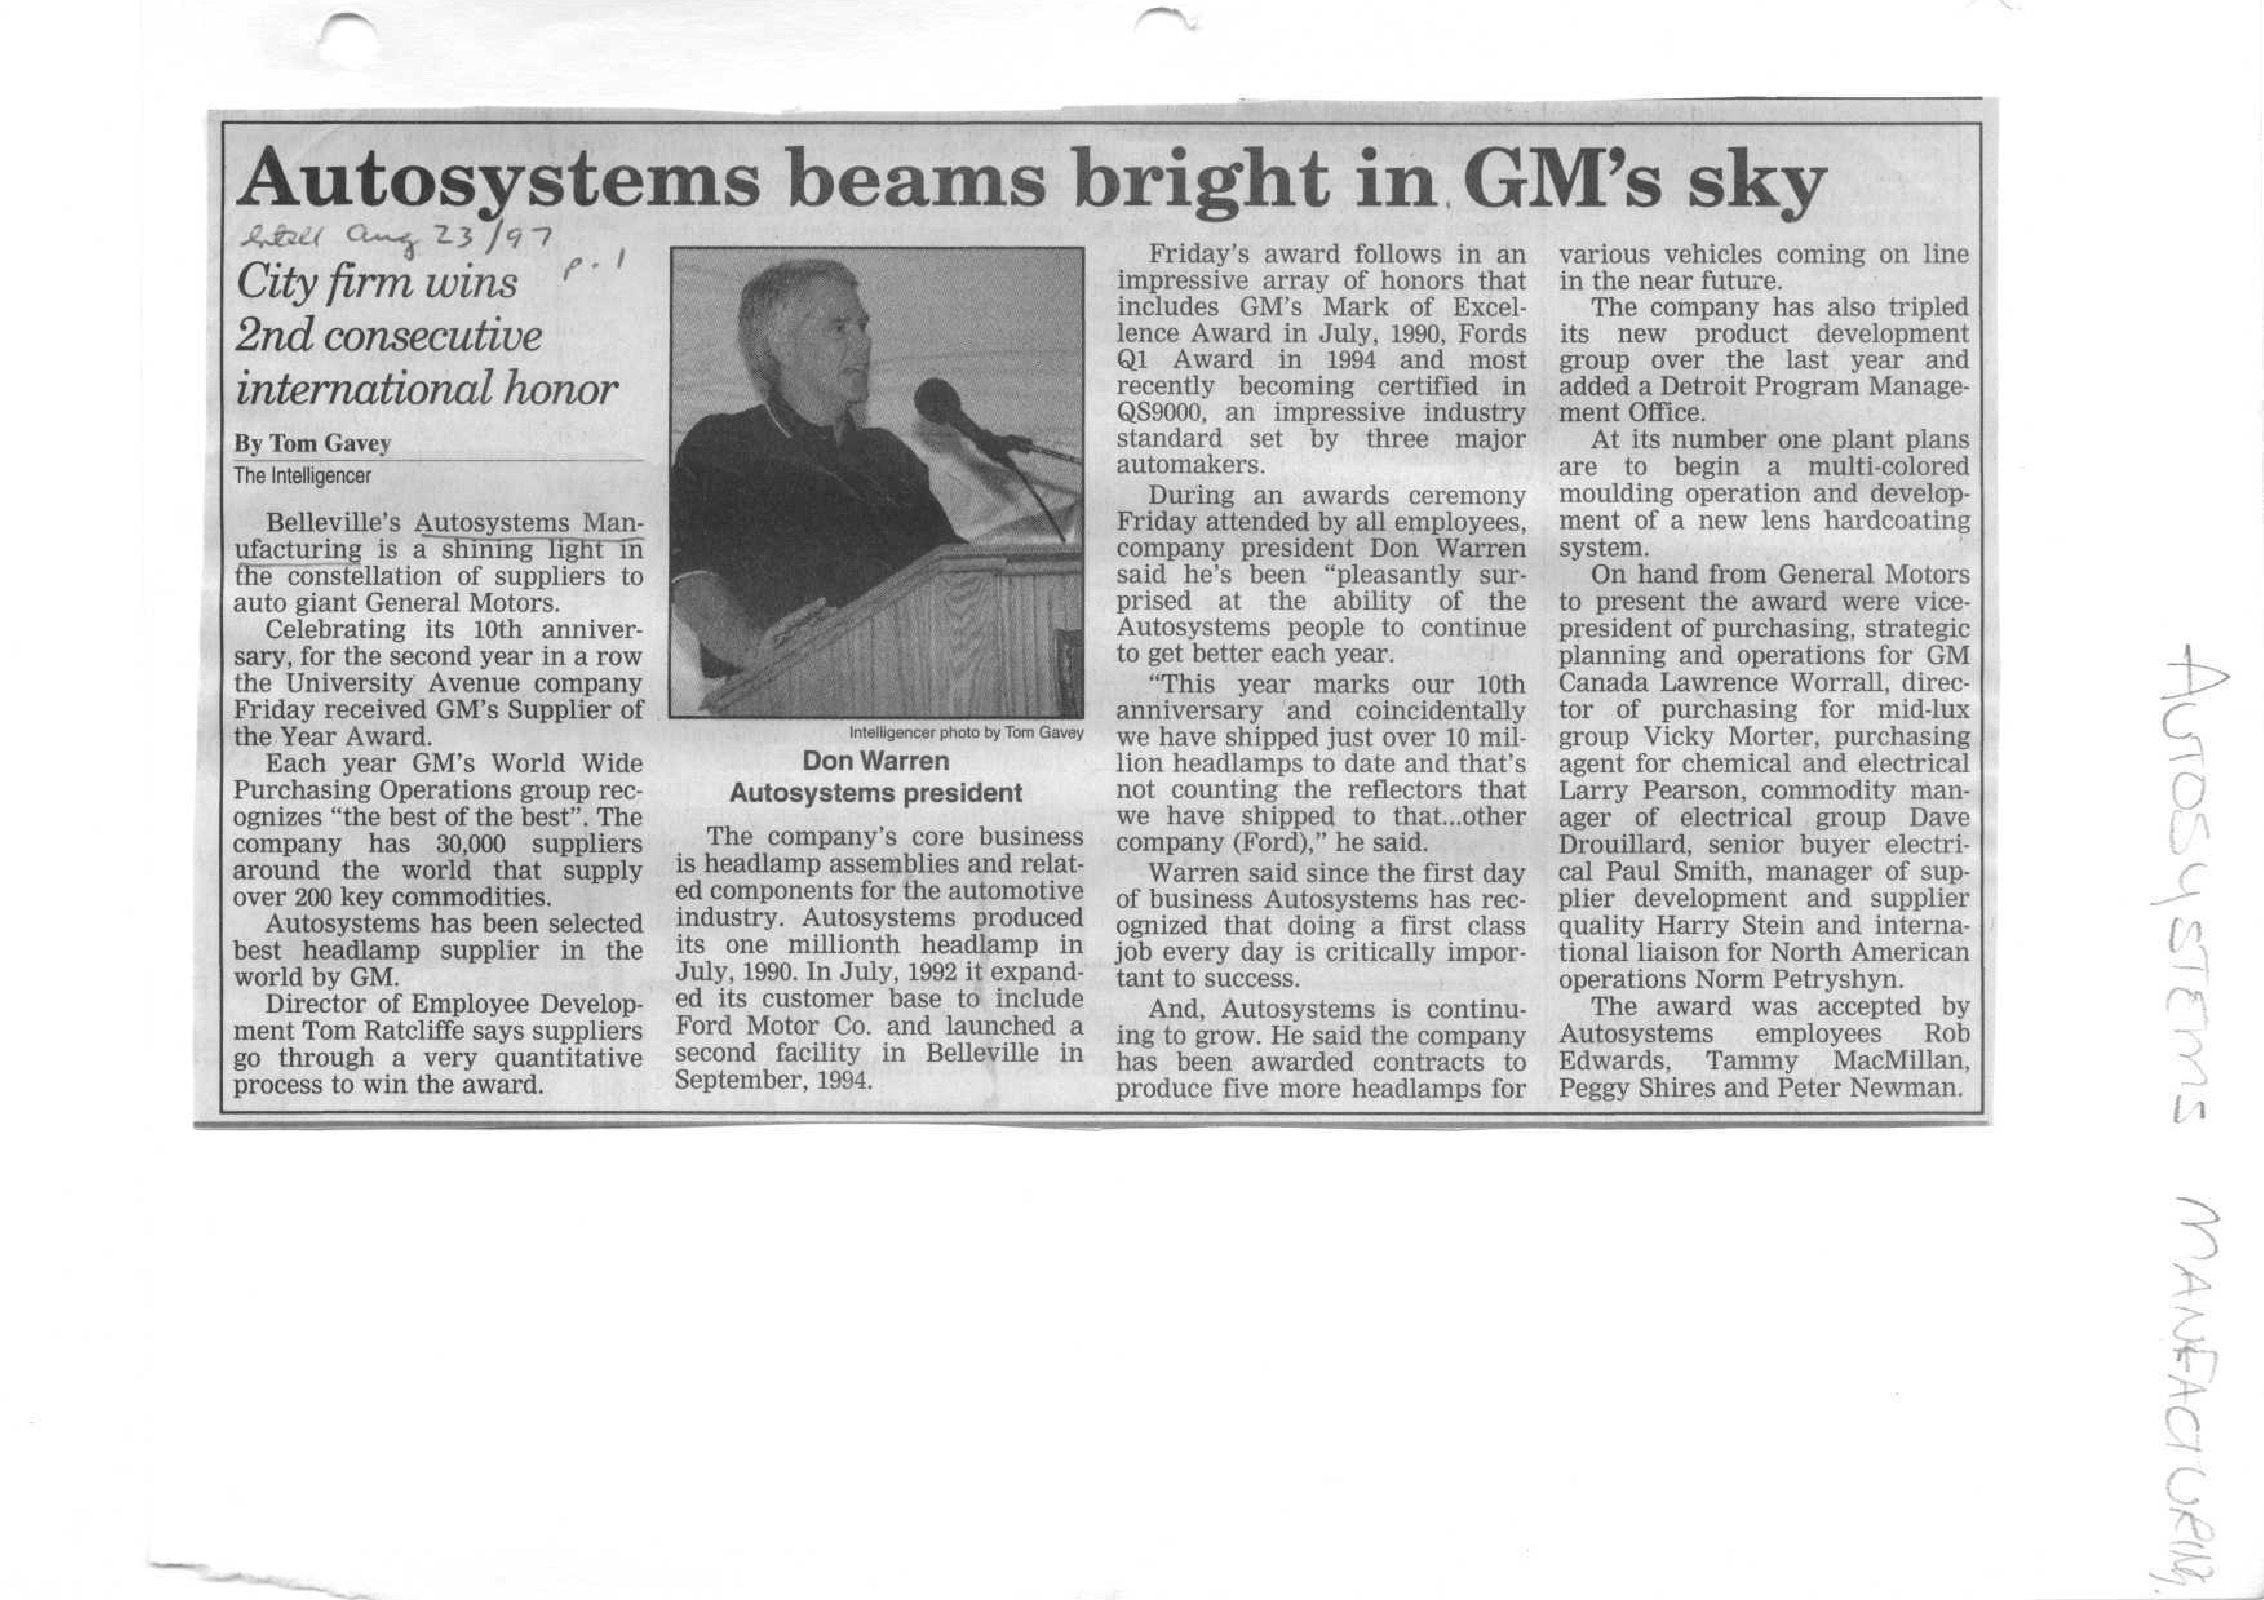 Autosystems beams bright in GM's sky